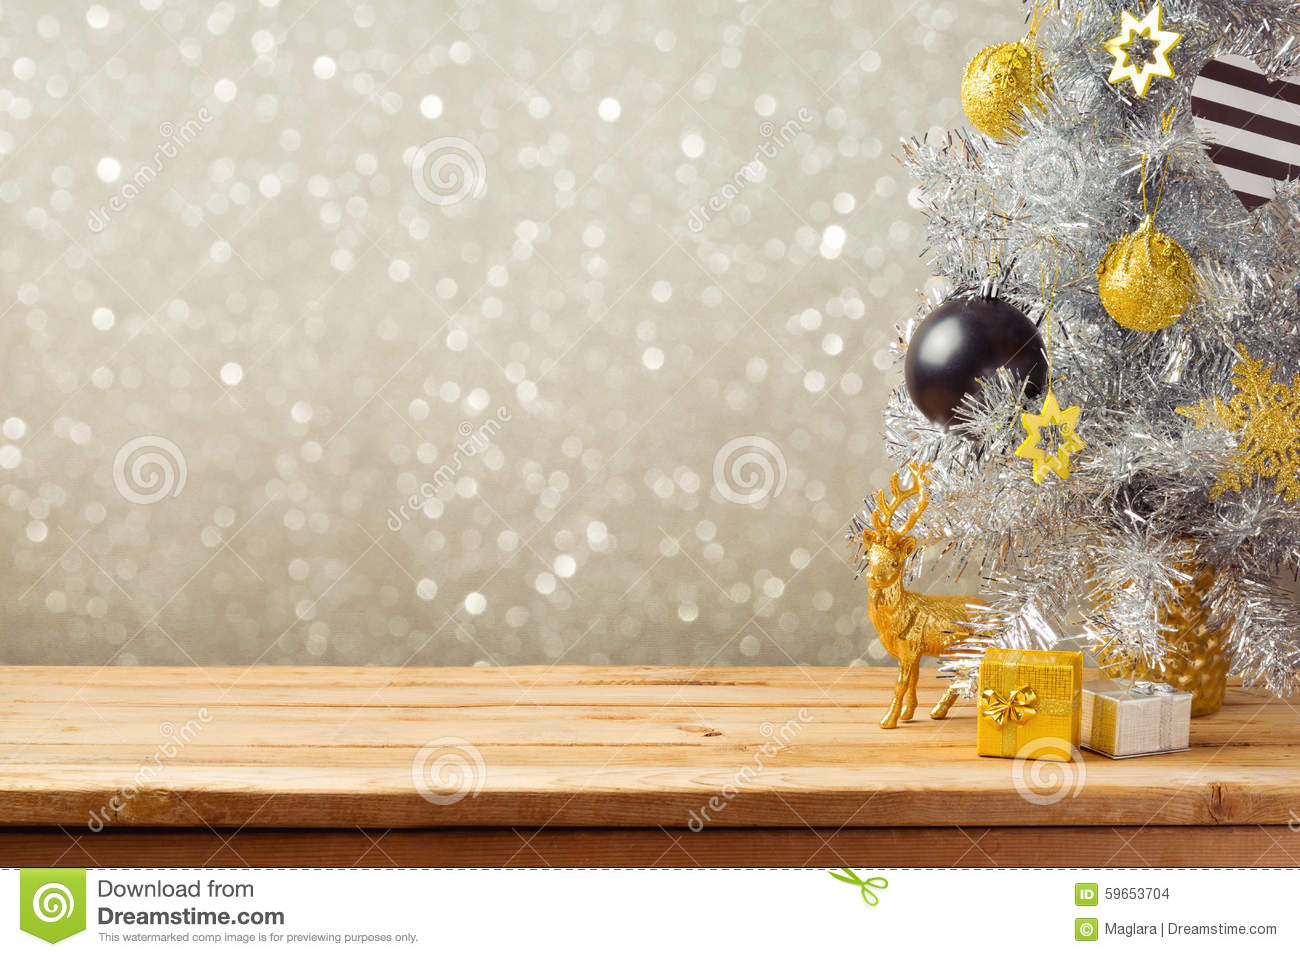 Christmas Tree Decoration Lights : Christmas holiday background with tree and